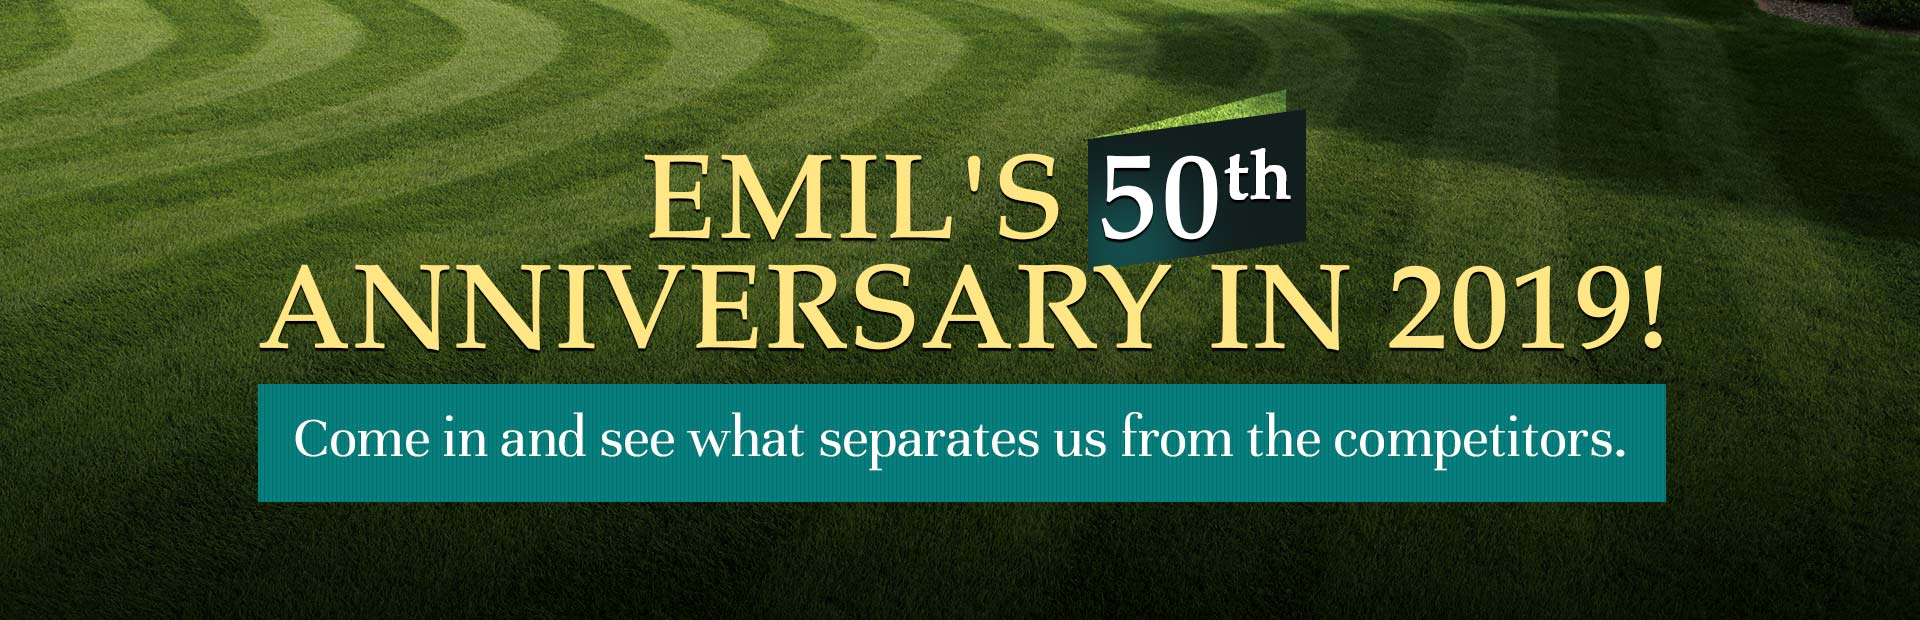 Emil's 50th Anniversary in 2019! Come in and see what separates us from the competitors.